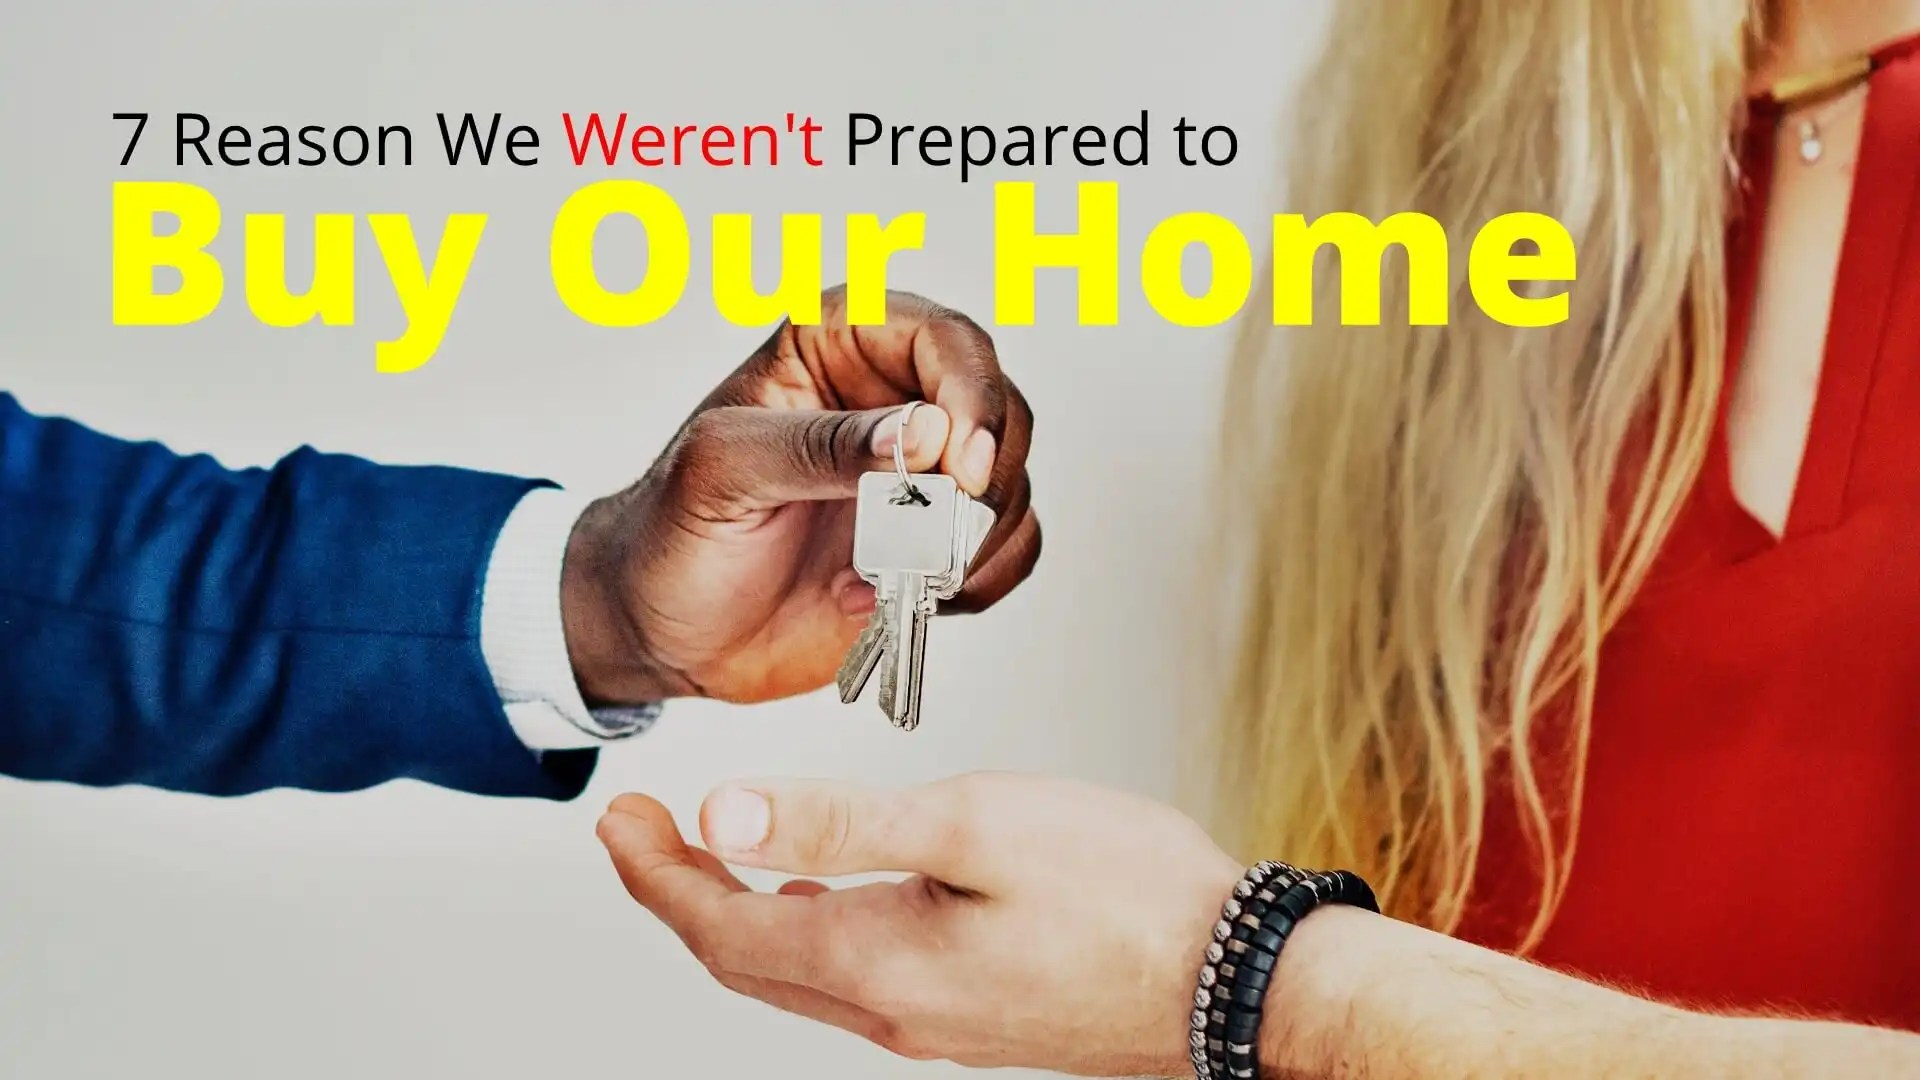 7 Reasons We Weren't Prepared to Buy Our Home